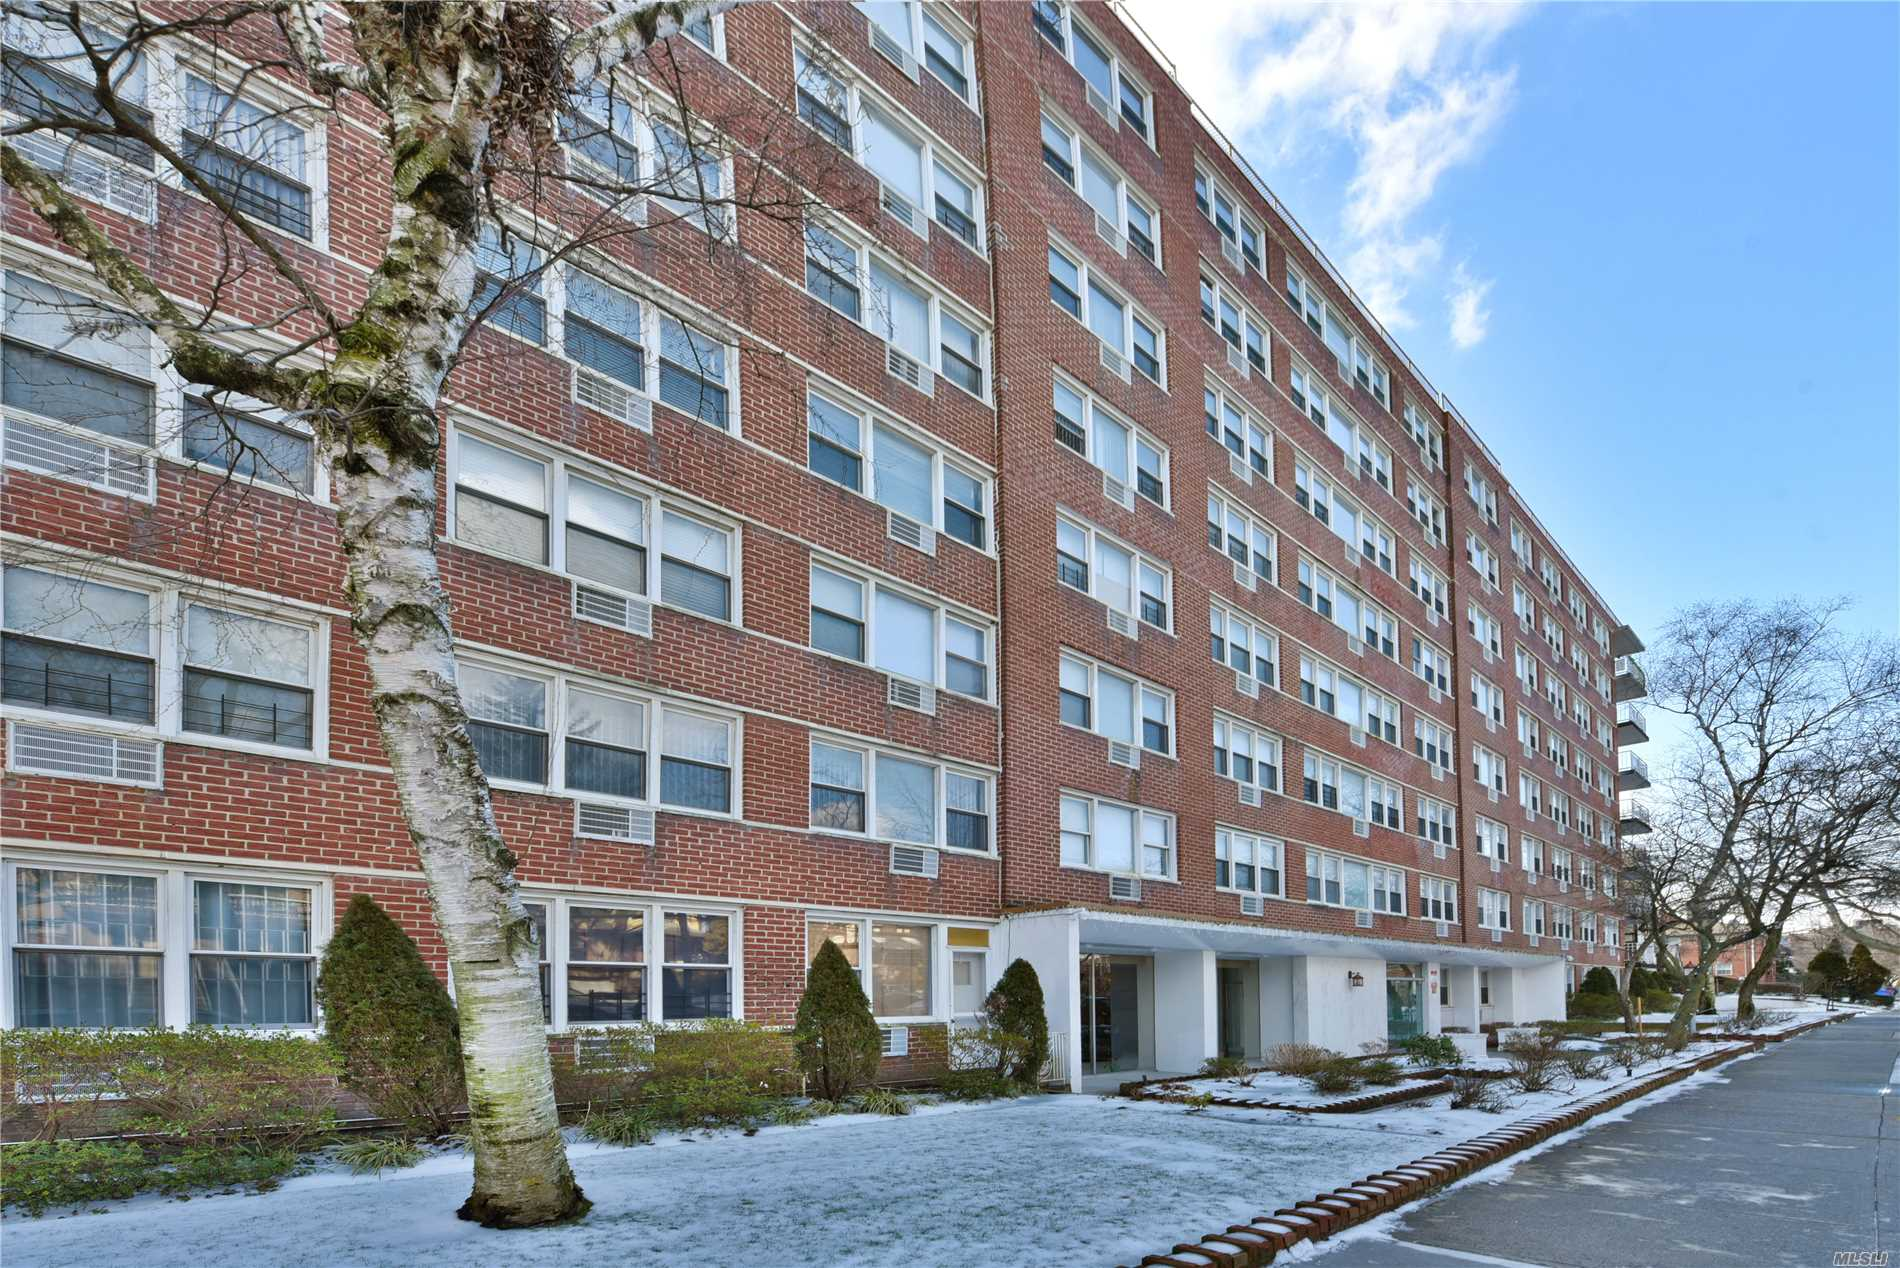 Top Floor Views In This Updated Studio Apartment In The Prestigious Jamaica Estates Building, The Coronet. The Building Features On-Site Parking, A Doorman, A Full Time Super, And Is Conveniently Located On A Quiet Residential Block, Just Minutes Away From Town, Shopping, Buses, And A Few Blocks Away From The 179St Subway Station.